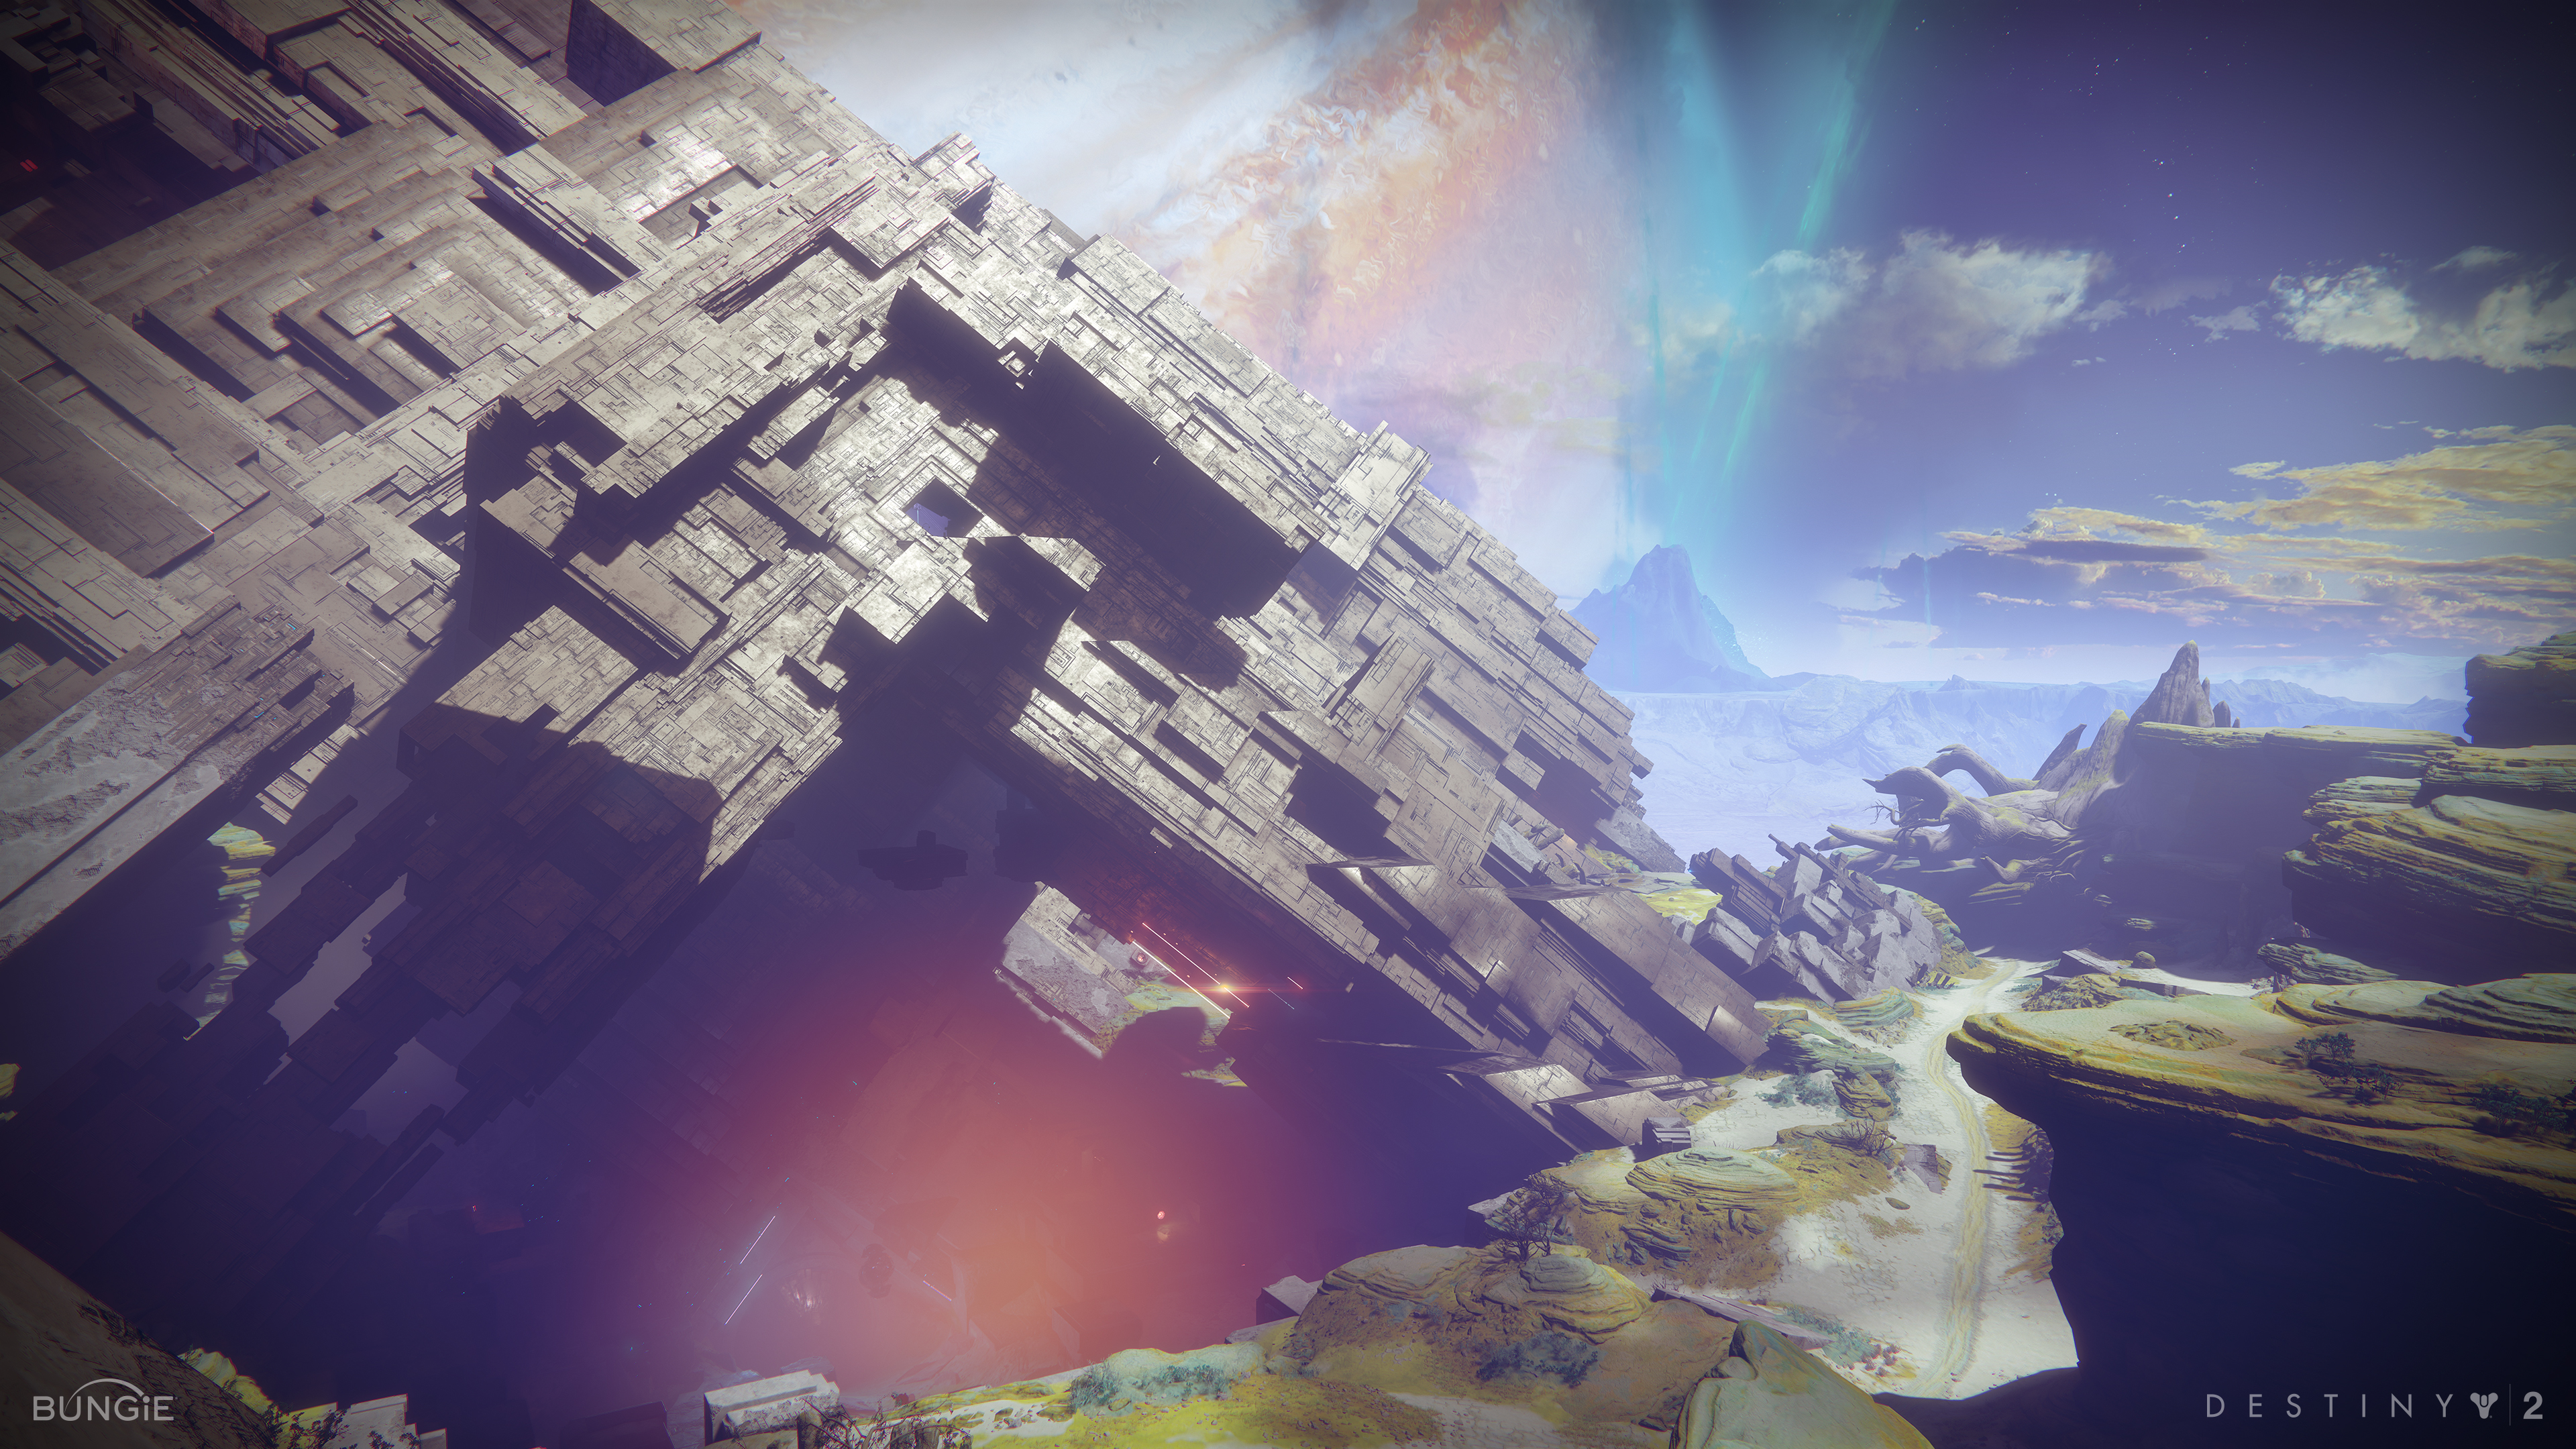 121 Destiny 2 Hd Wallpapers Background Images Wallpaper Abyss